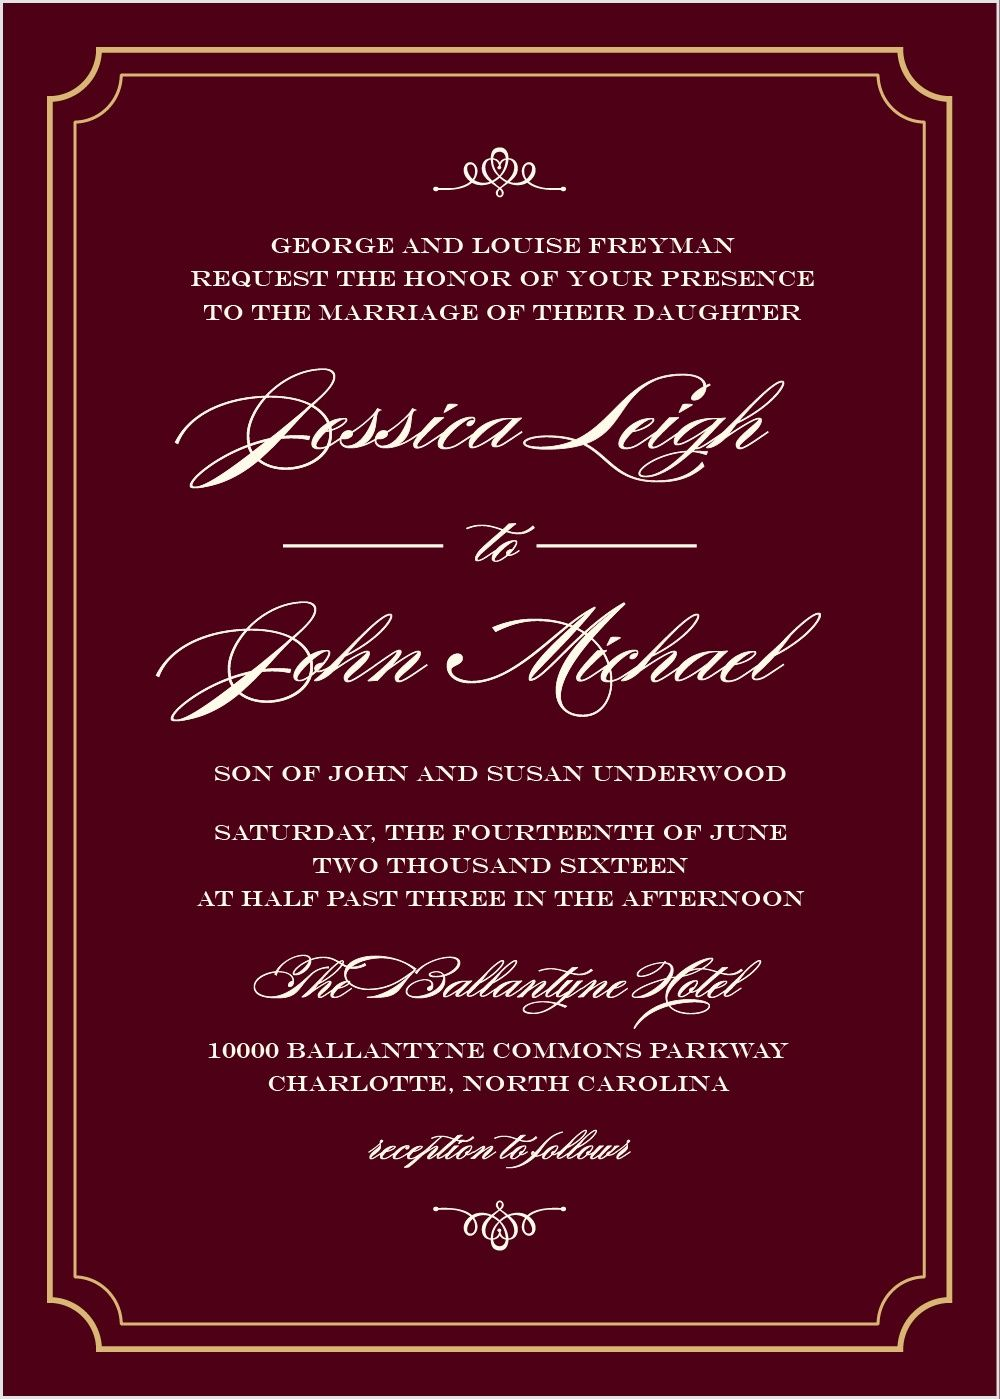 Elegant Script Foil Wedding Invitations | Wedding ideas | Pinterest ...